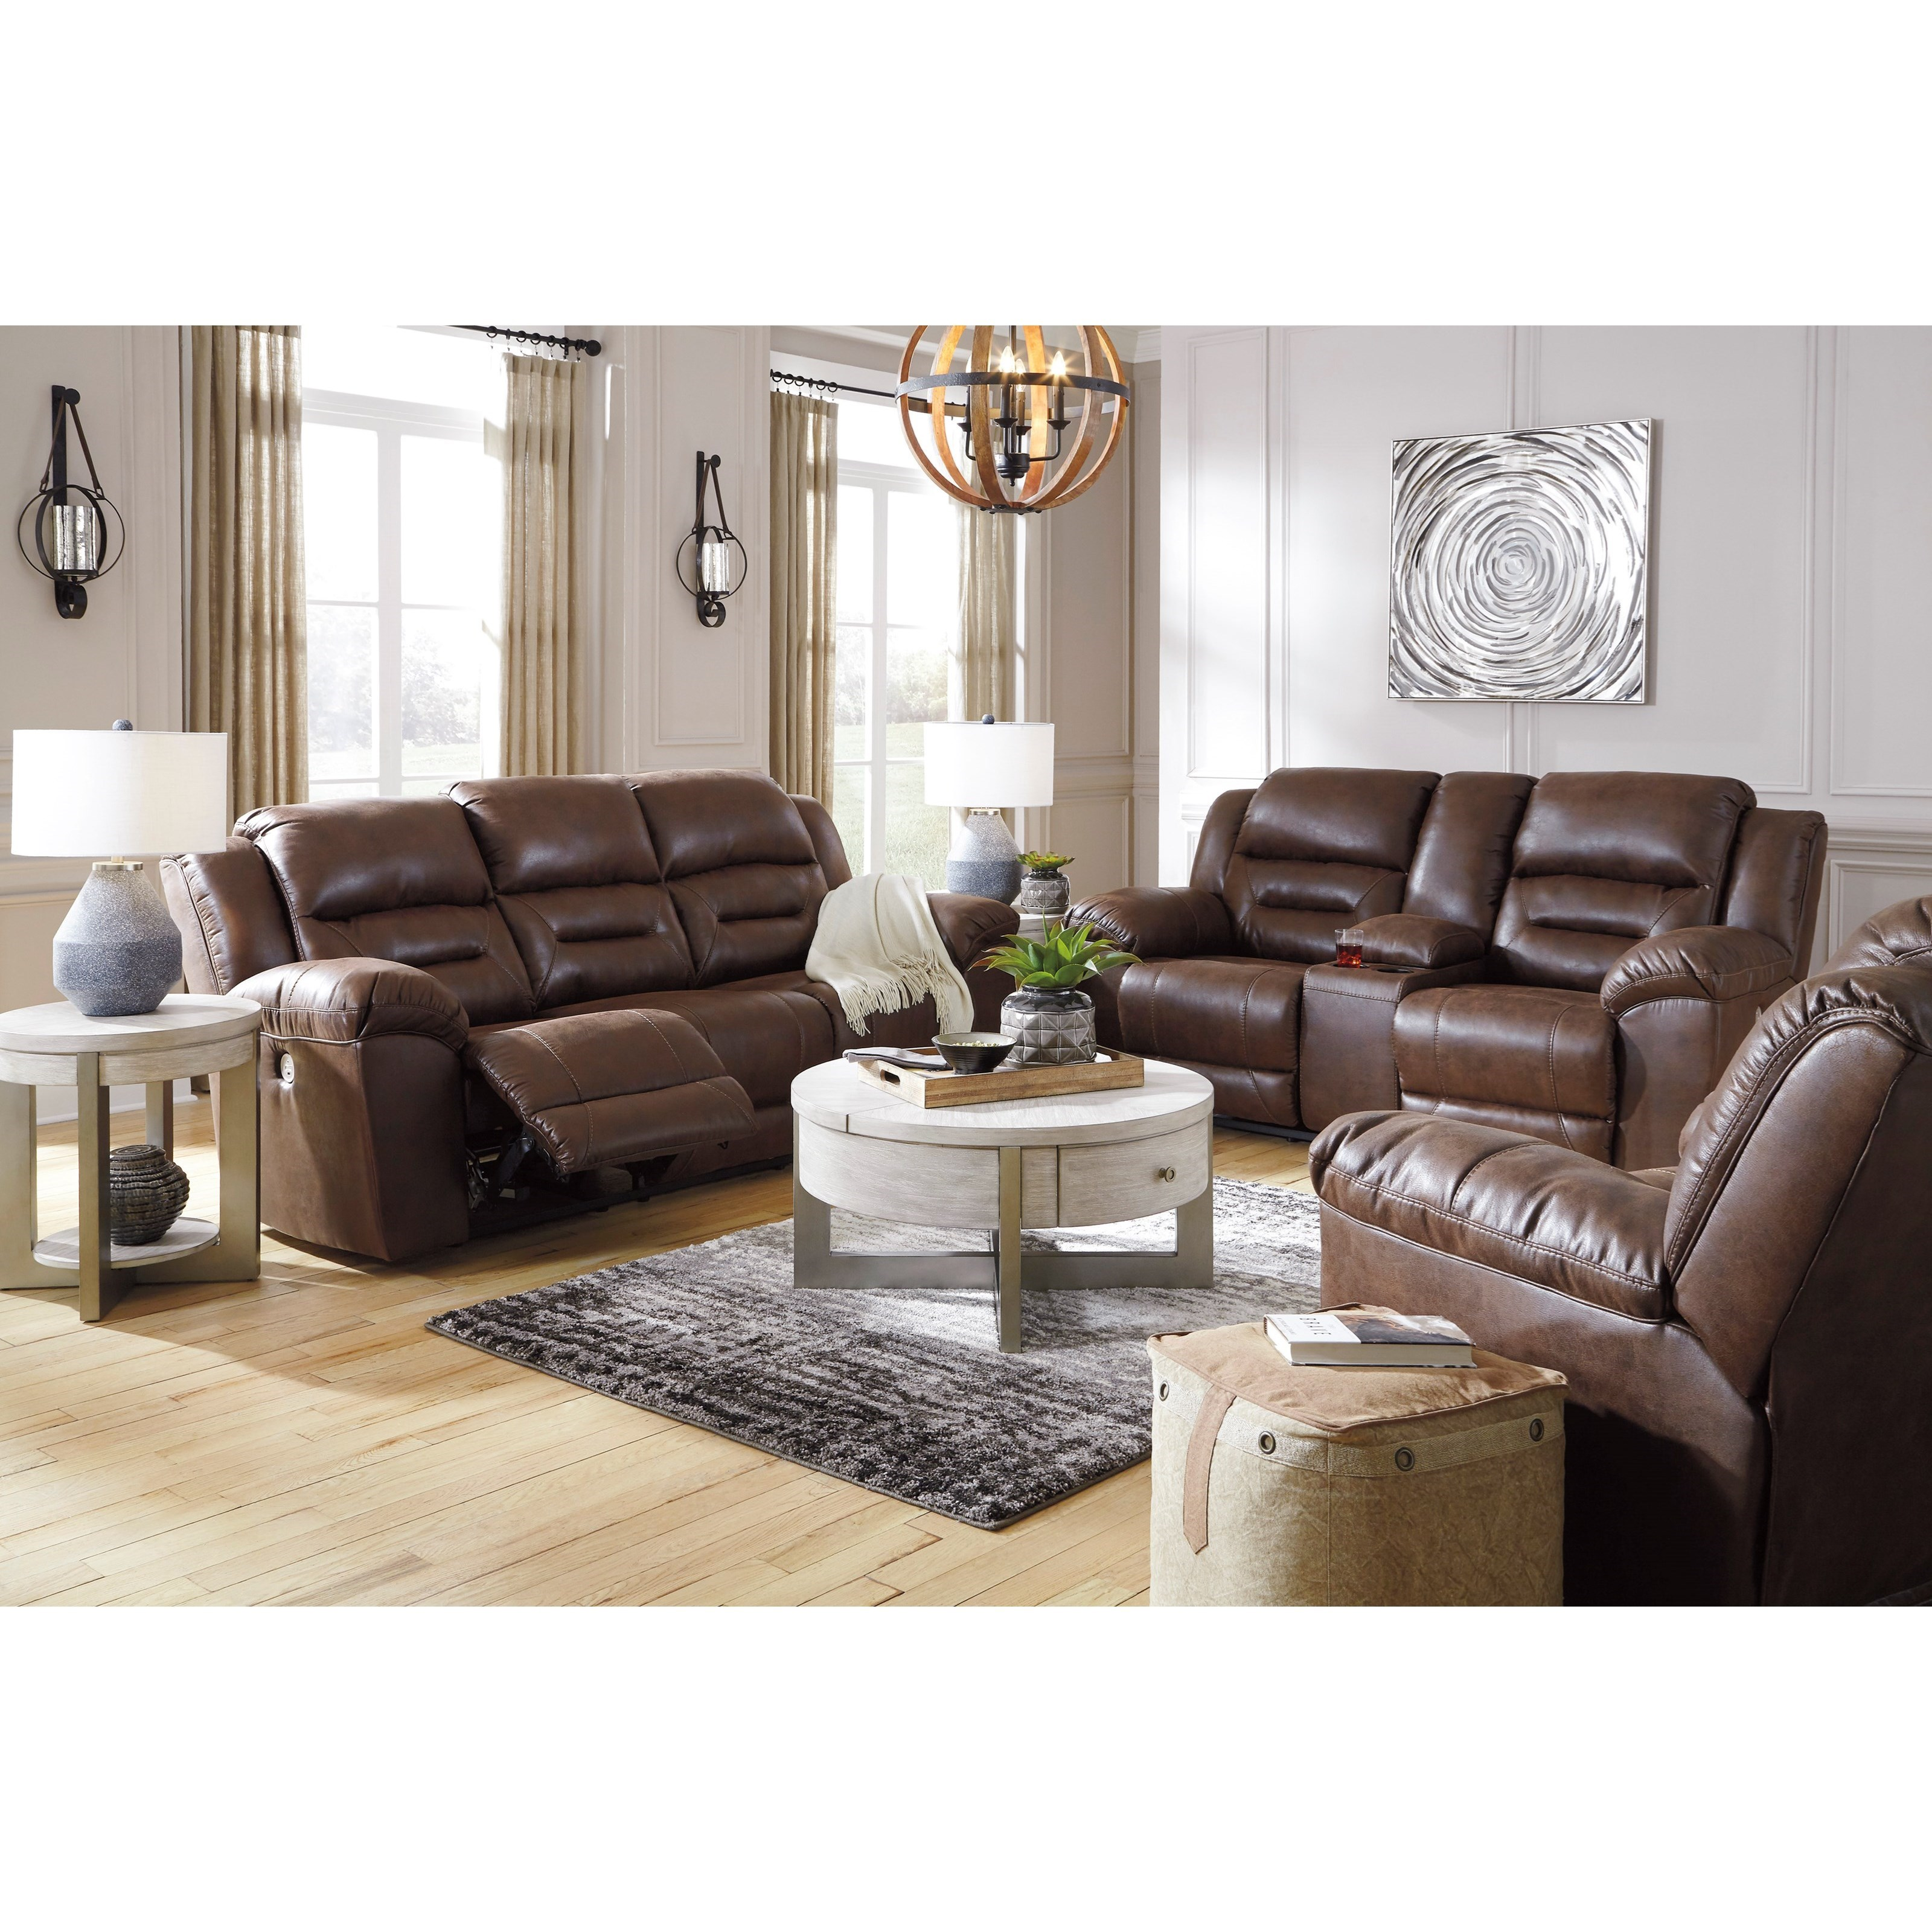 Stoneland Reclining Living Room Group by Signature Design by Ashley at Northeast Factory Direct